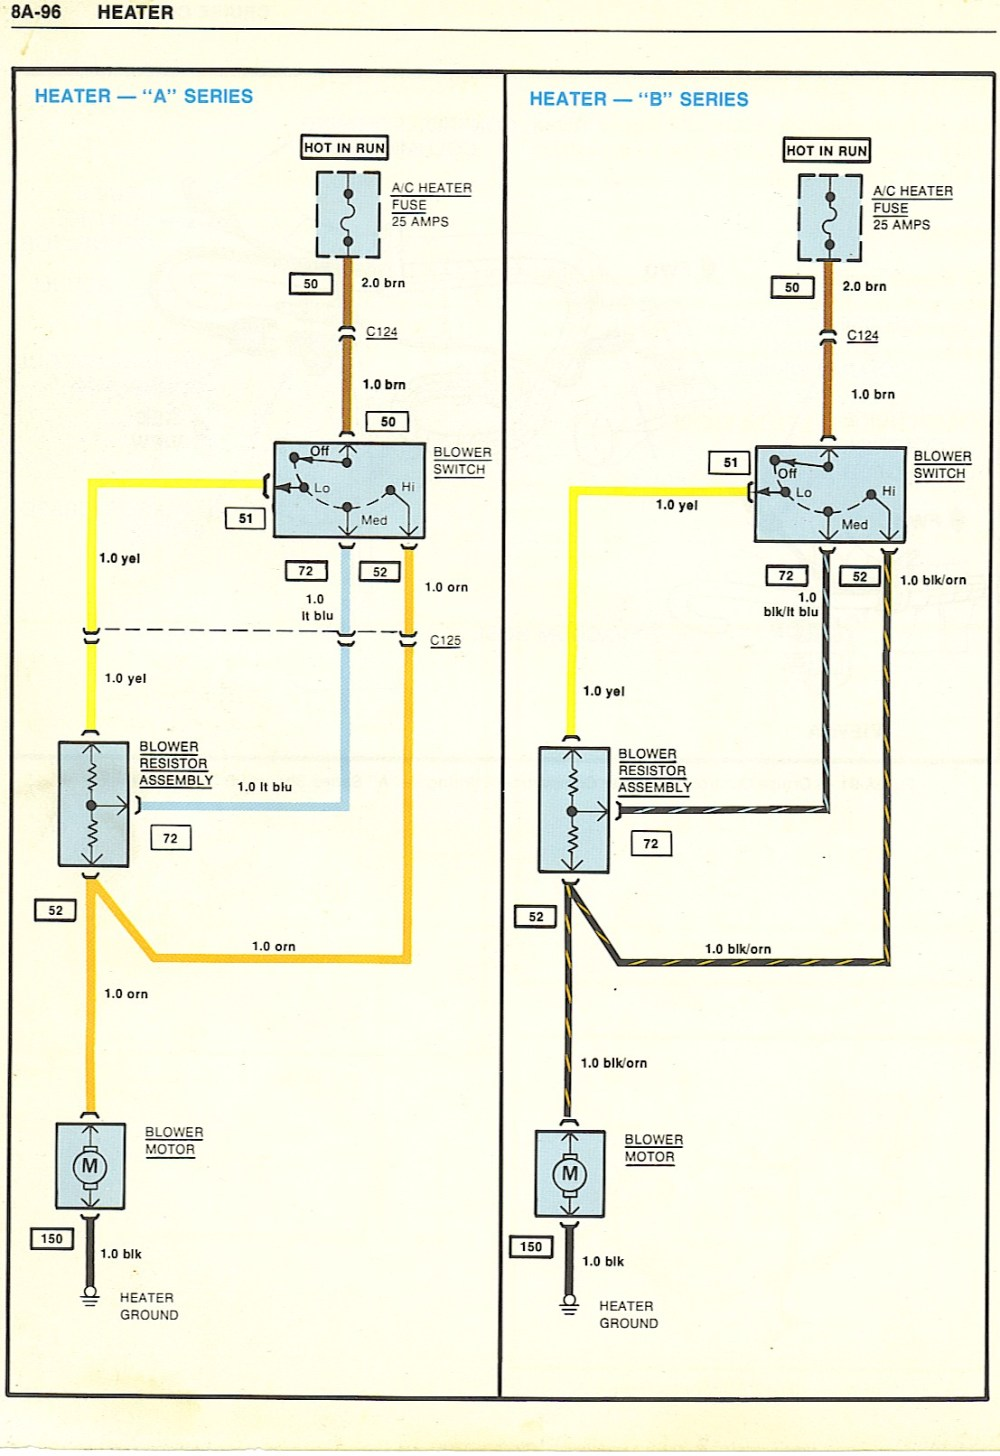 medium resolution of gm heater wiring wiring diagram repair guides gm heater wiring harness diagram